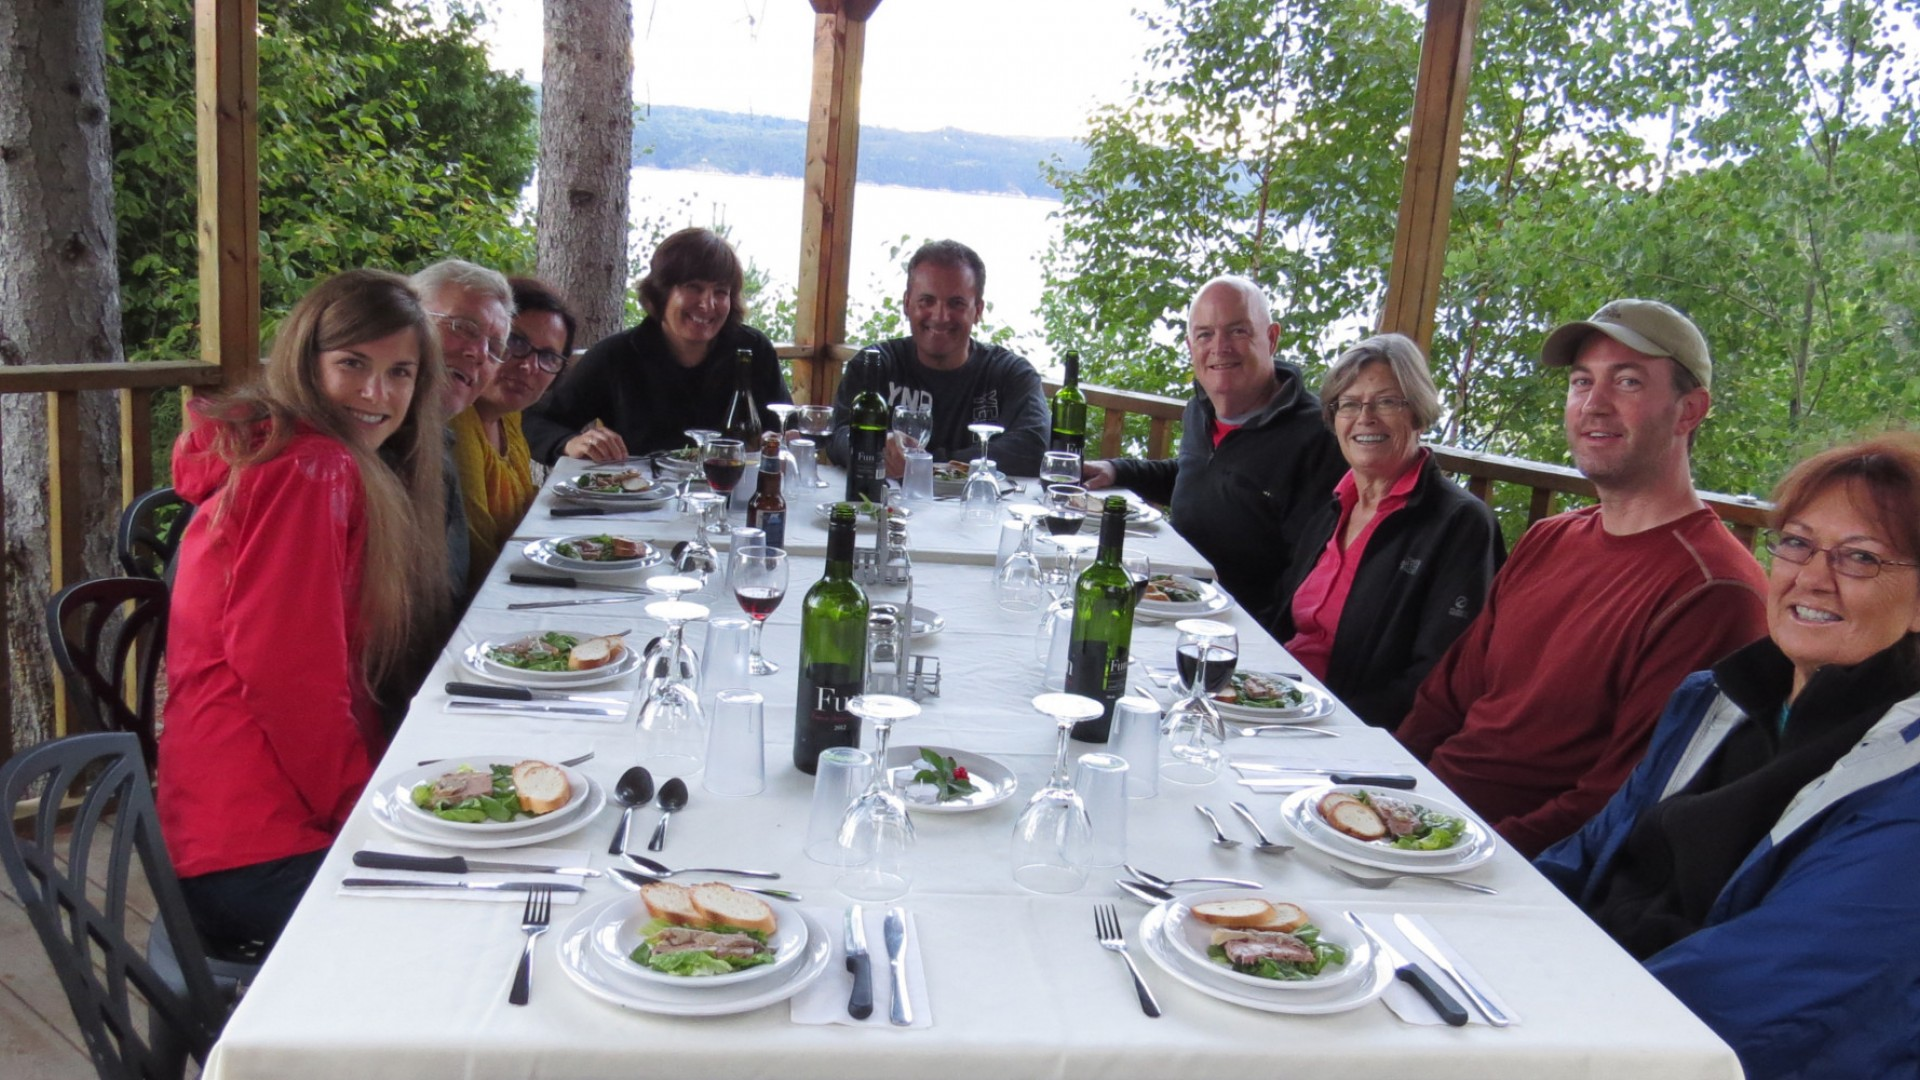 travel group eating dinner at table together